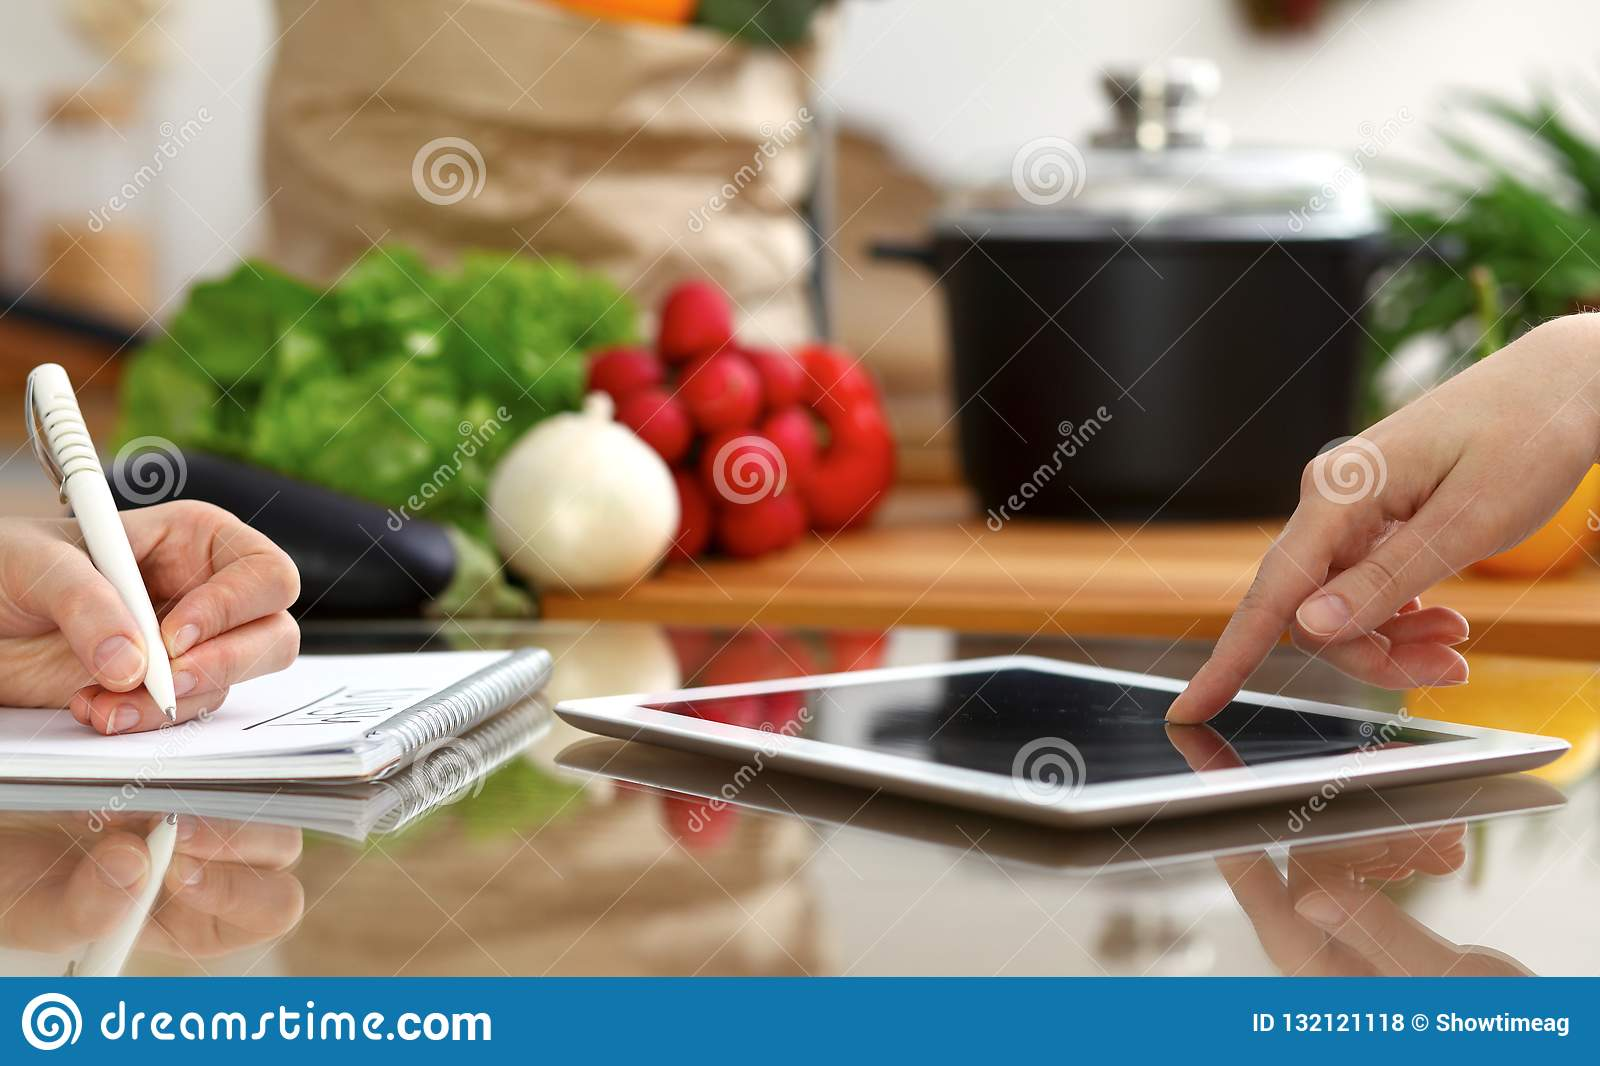 Close-up of human hands using tablet or touch pad. Two women in kitchen.  Cooking 66fc6b6f3a